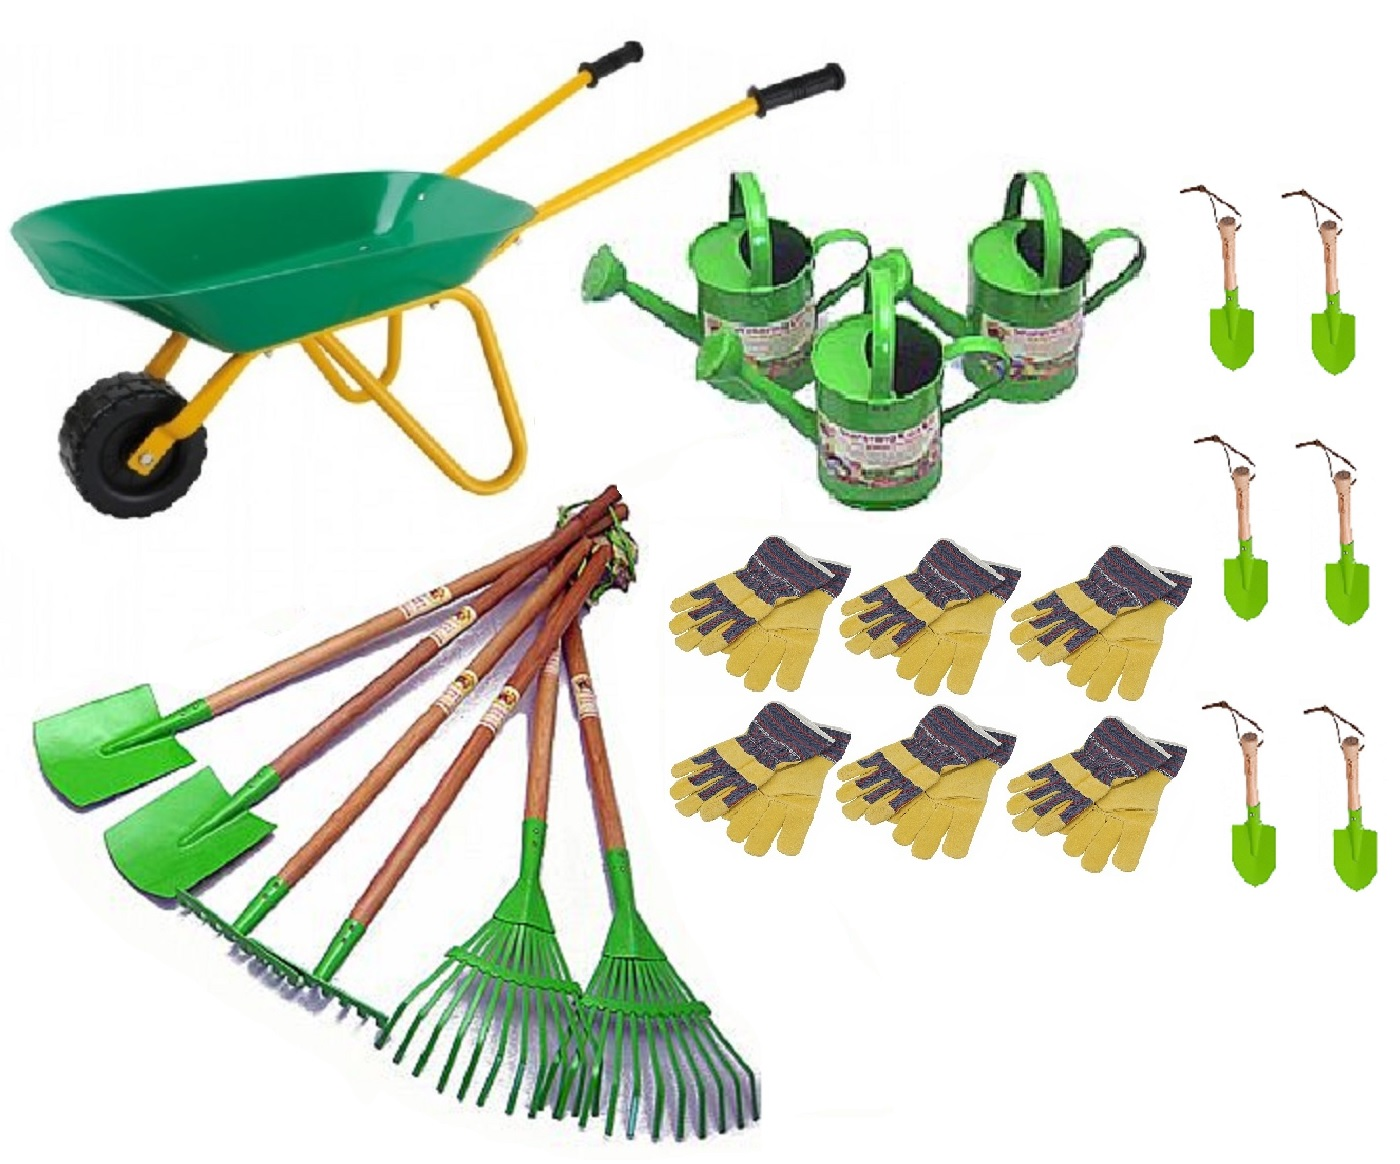 Primary school gardening tools kids garden tools for Childrens gardening tools